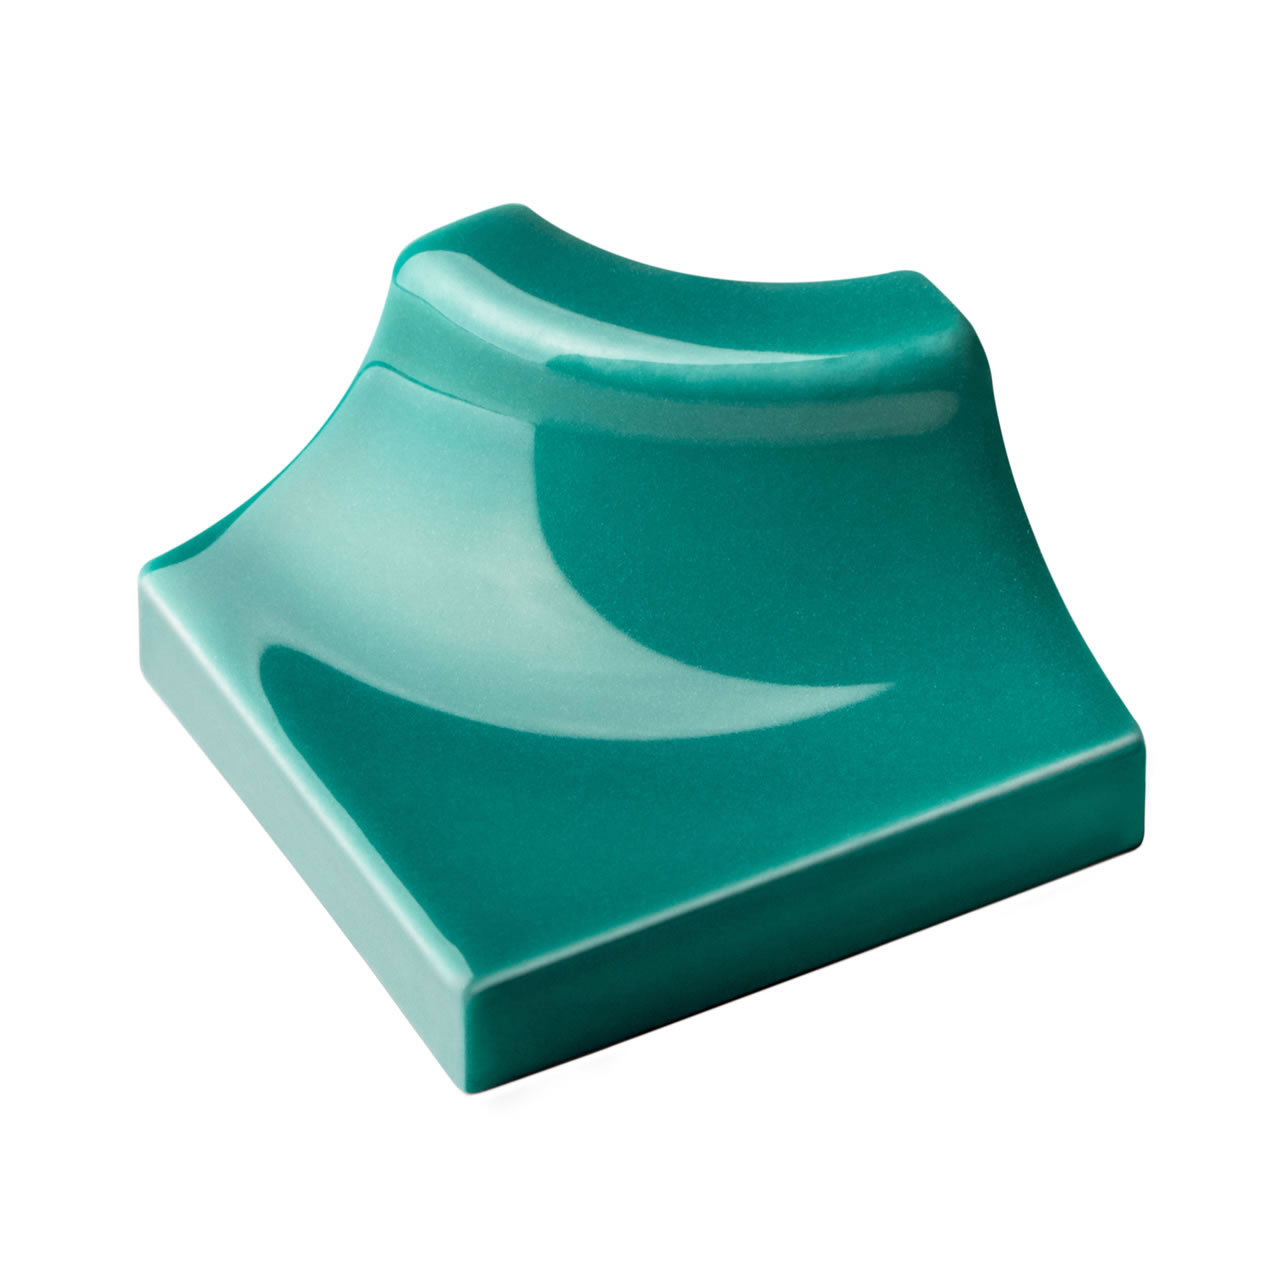 jade green inner edge 2.5×2,5